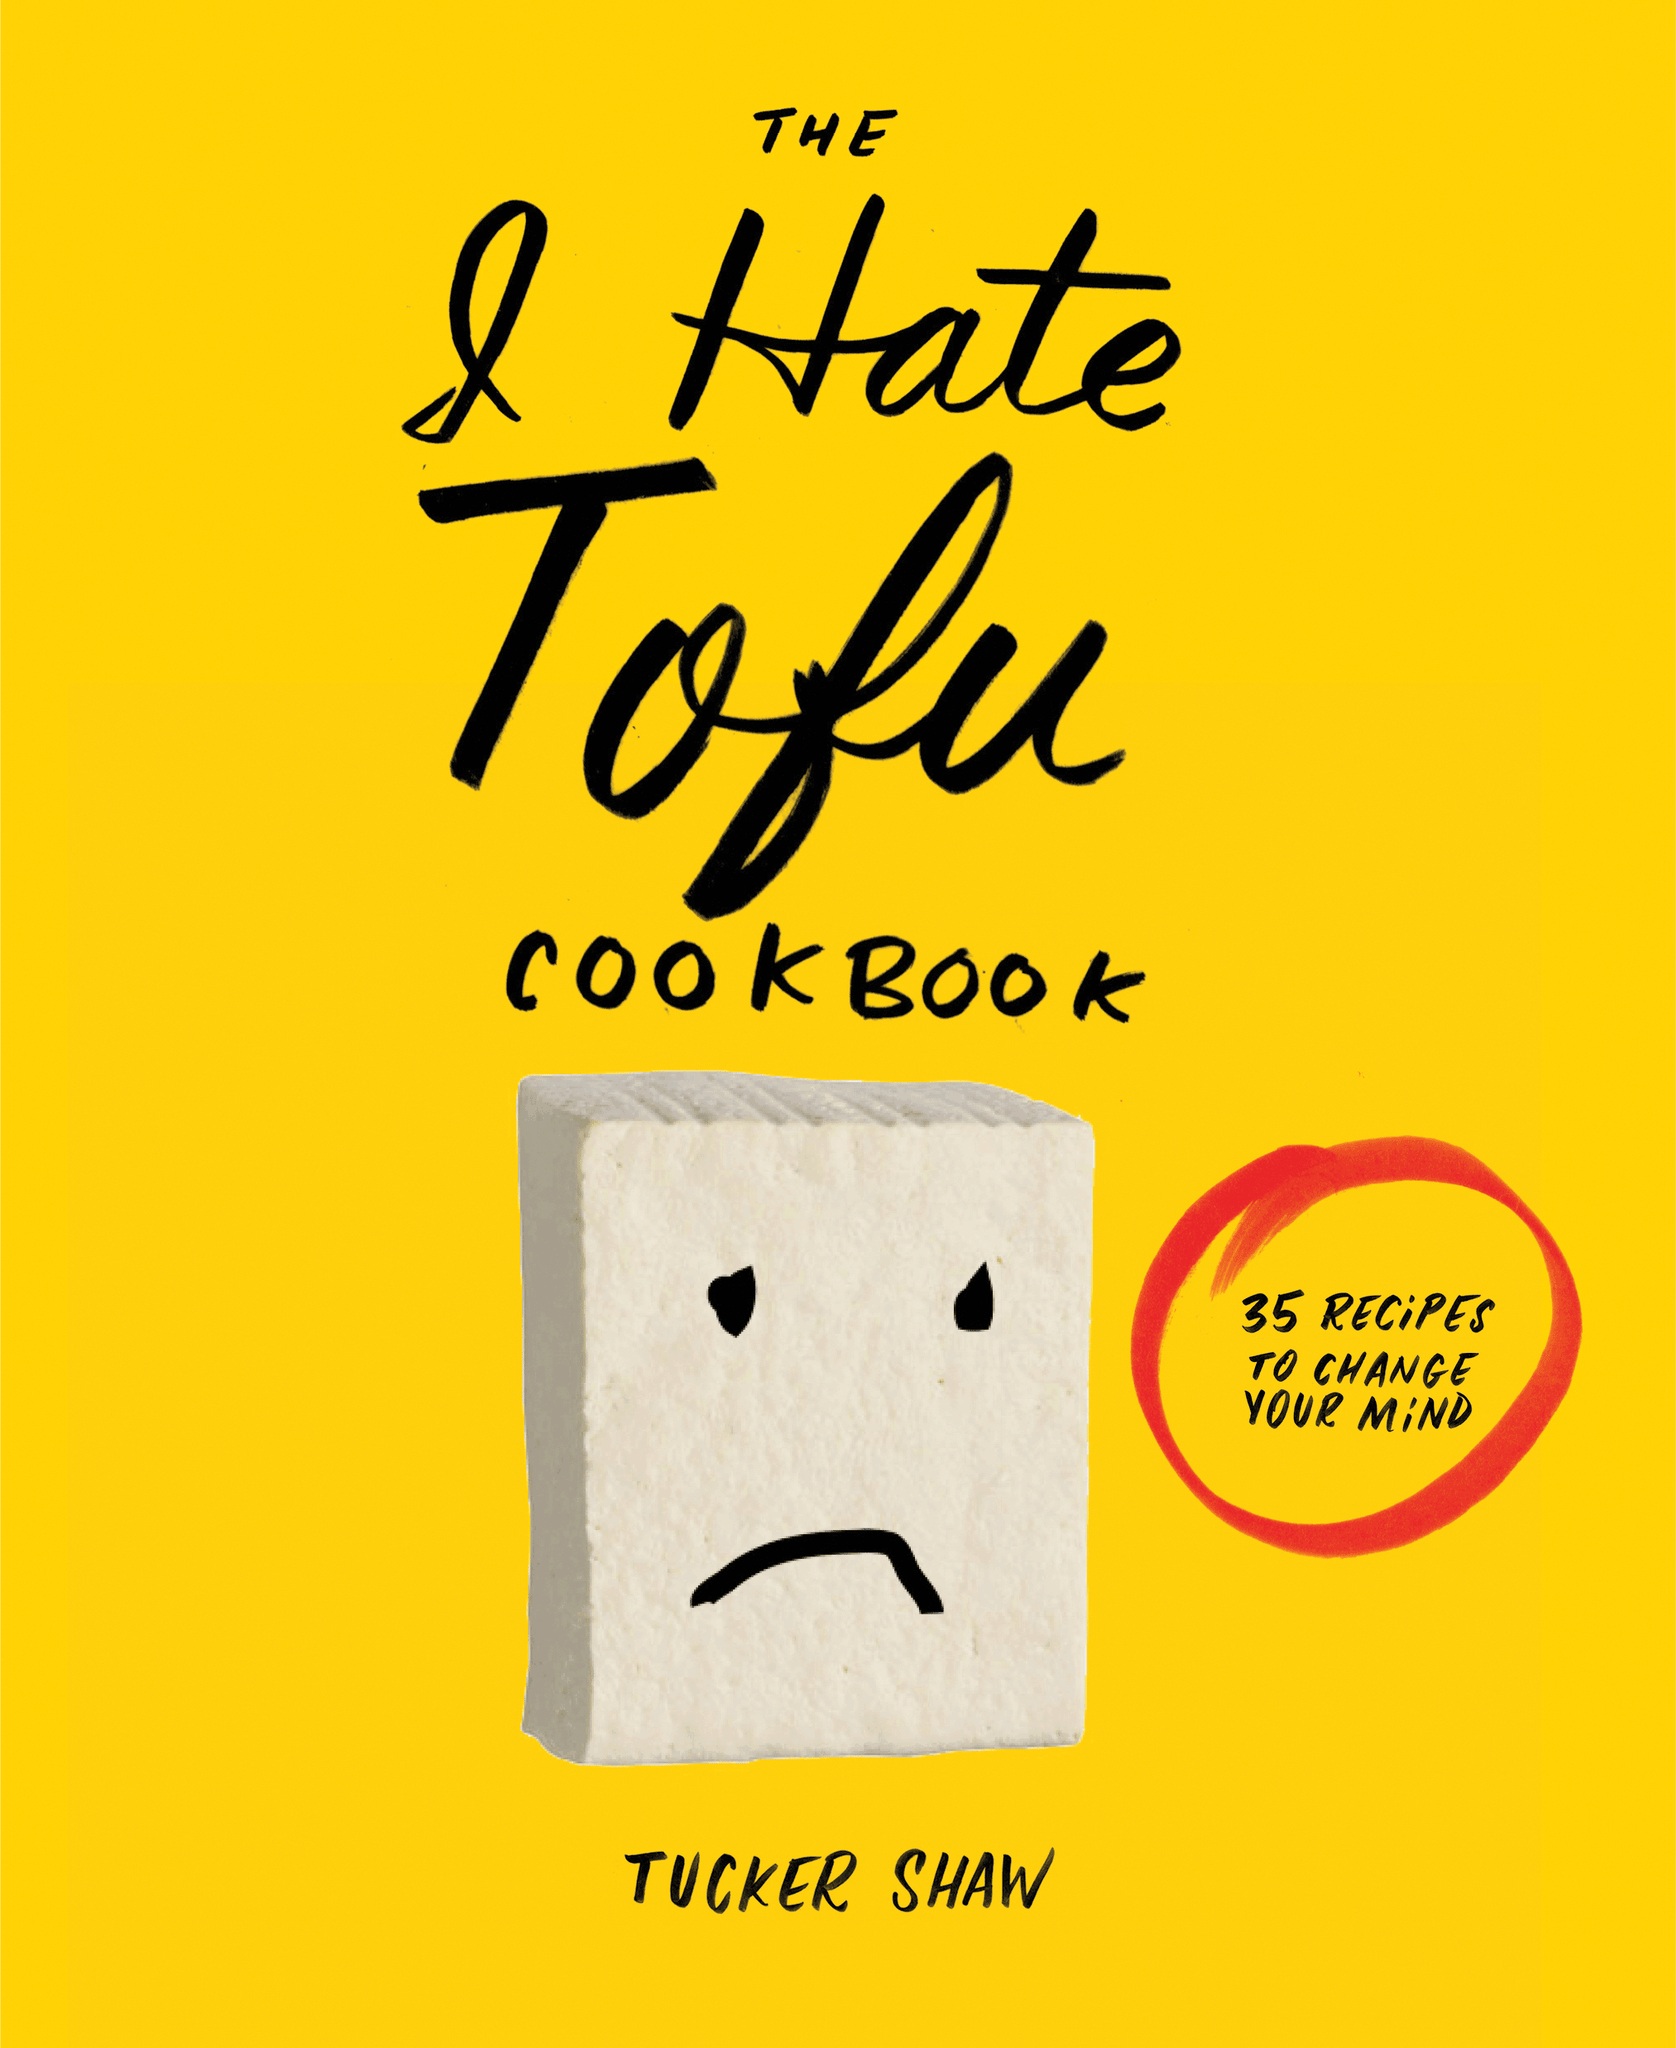 Tofu offer redemption to the haters and hope to the lovers. Designed to convert the staunchest of critics, the recipes are easy to follow and unintimidating for novice—and skeptical—cooks. The books include 35 easy recipes that take into account what the haters dislike—texture, smell, taste—to help them open up their minds and change a hate into a love.